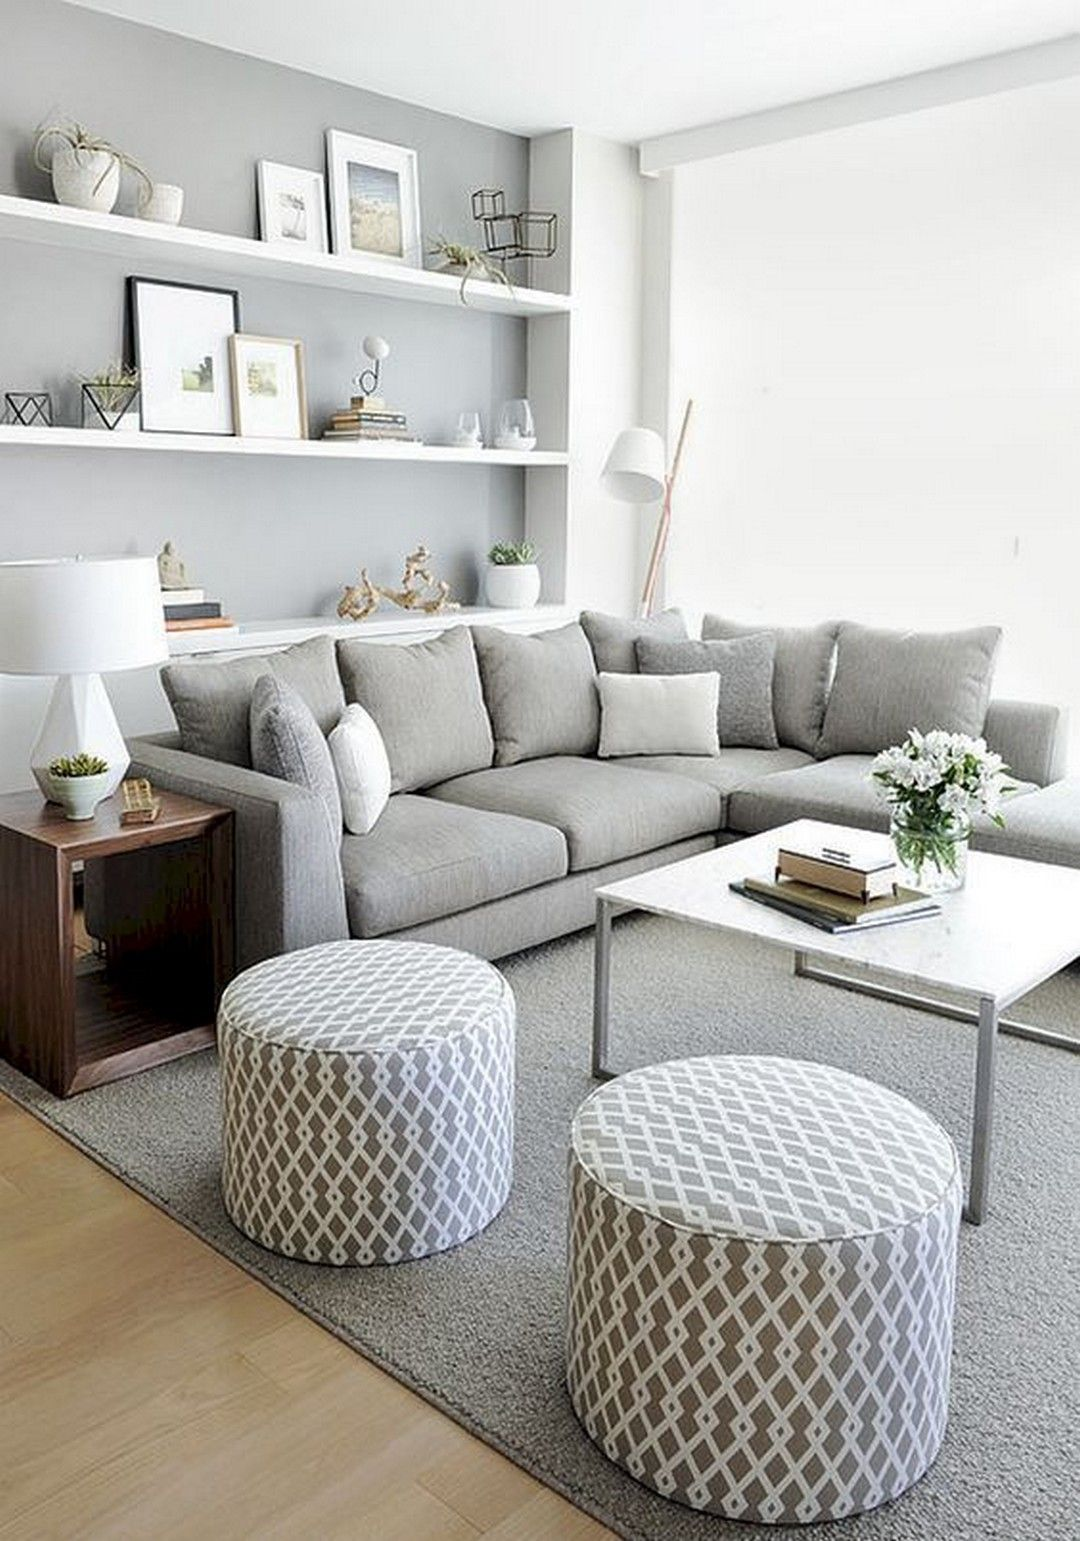 85 Cozy Small Apartment Decorating Ideas On A Budget | Apartments ...